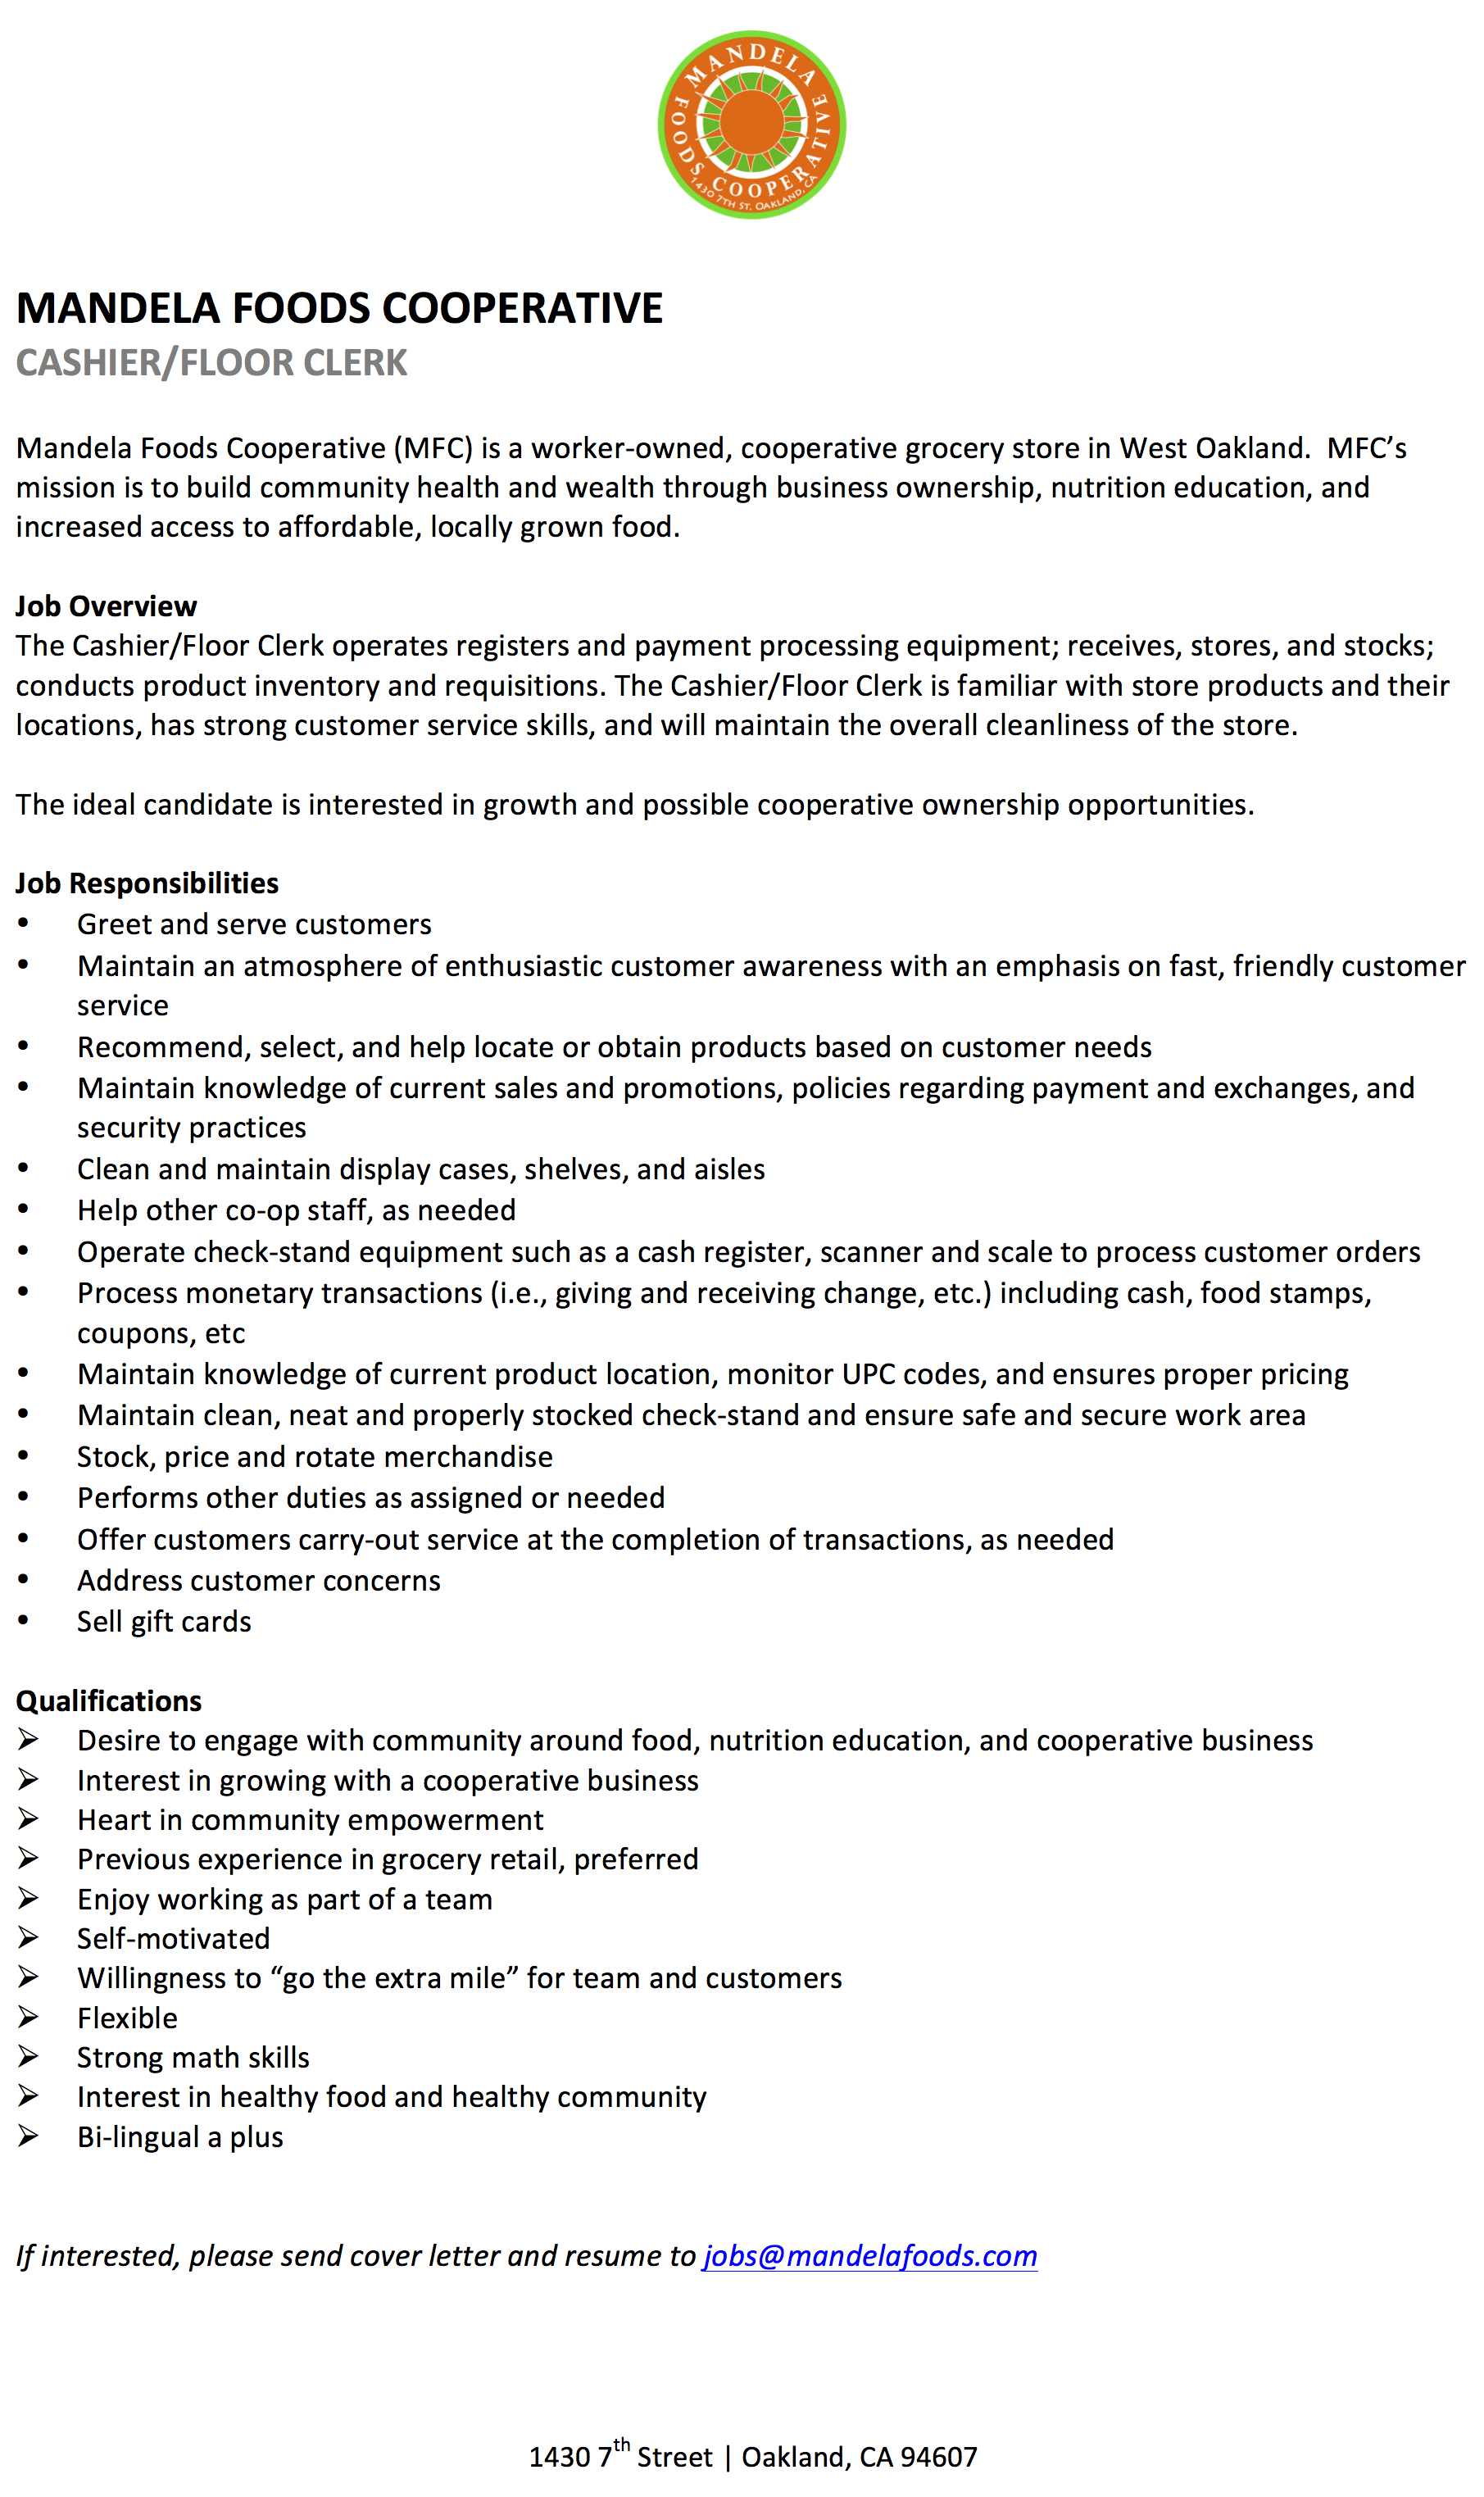 hvac resume sample pdf